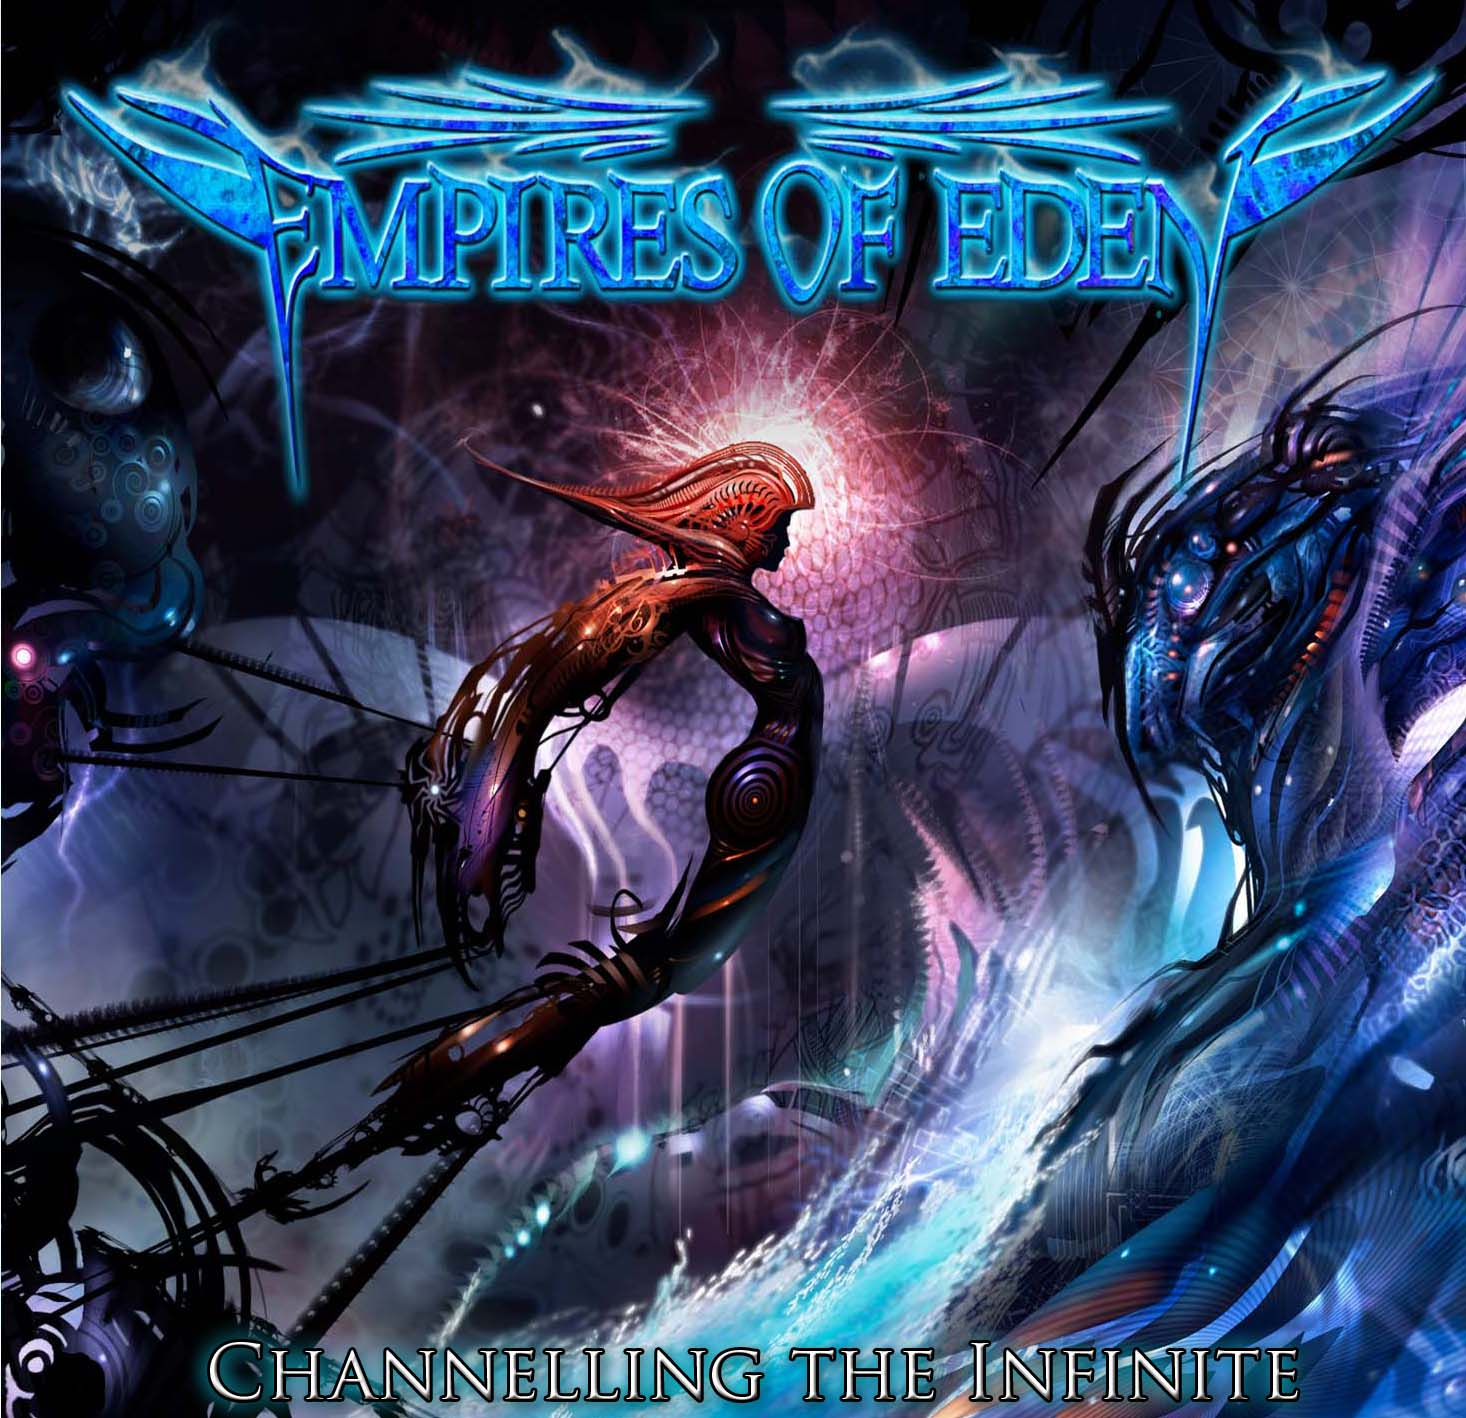 Empires of Eden – Channeling the Infinite Review